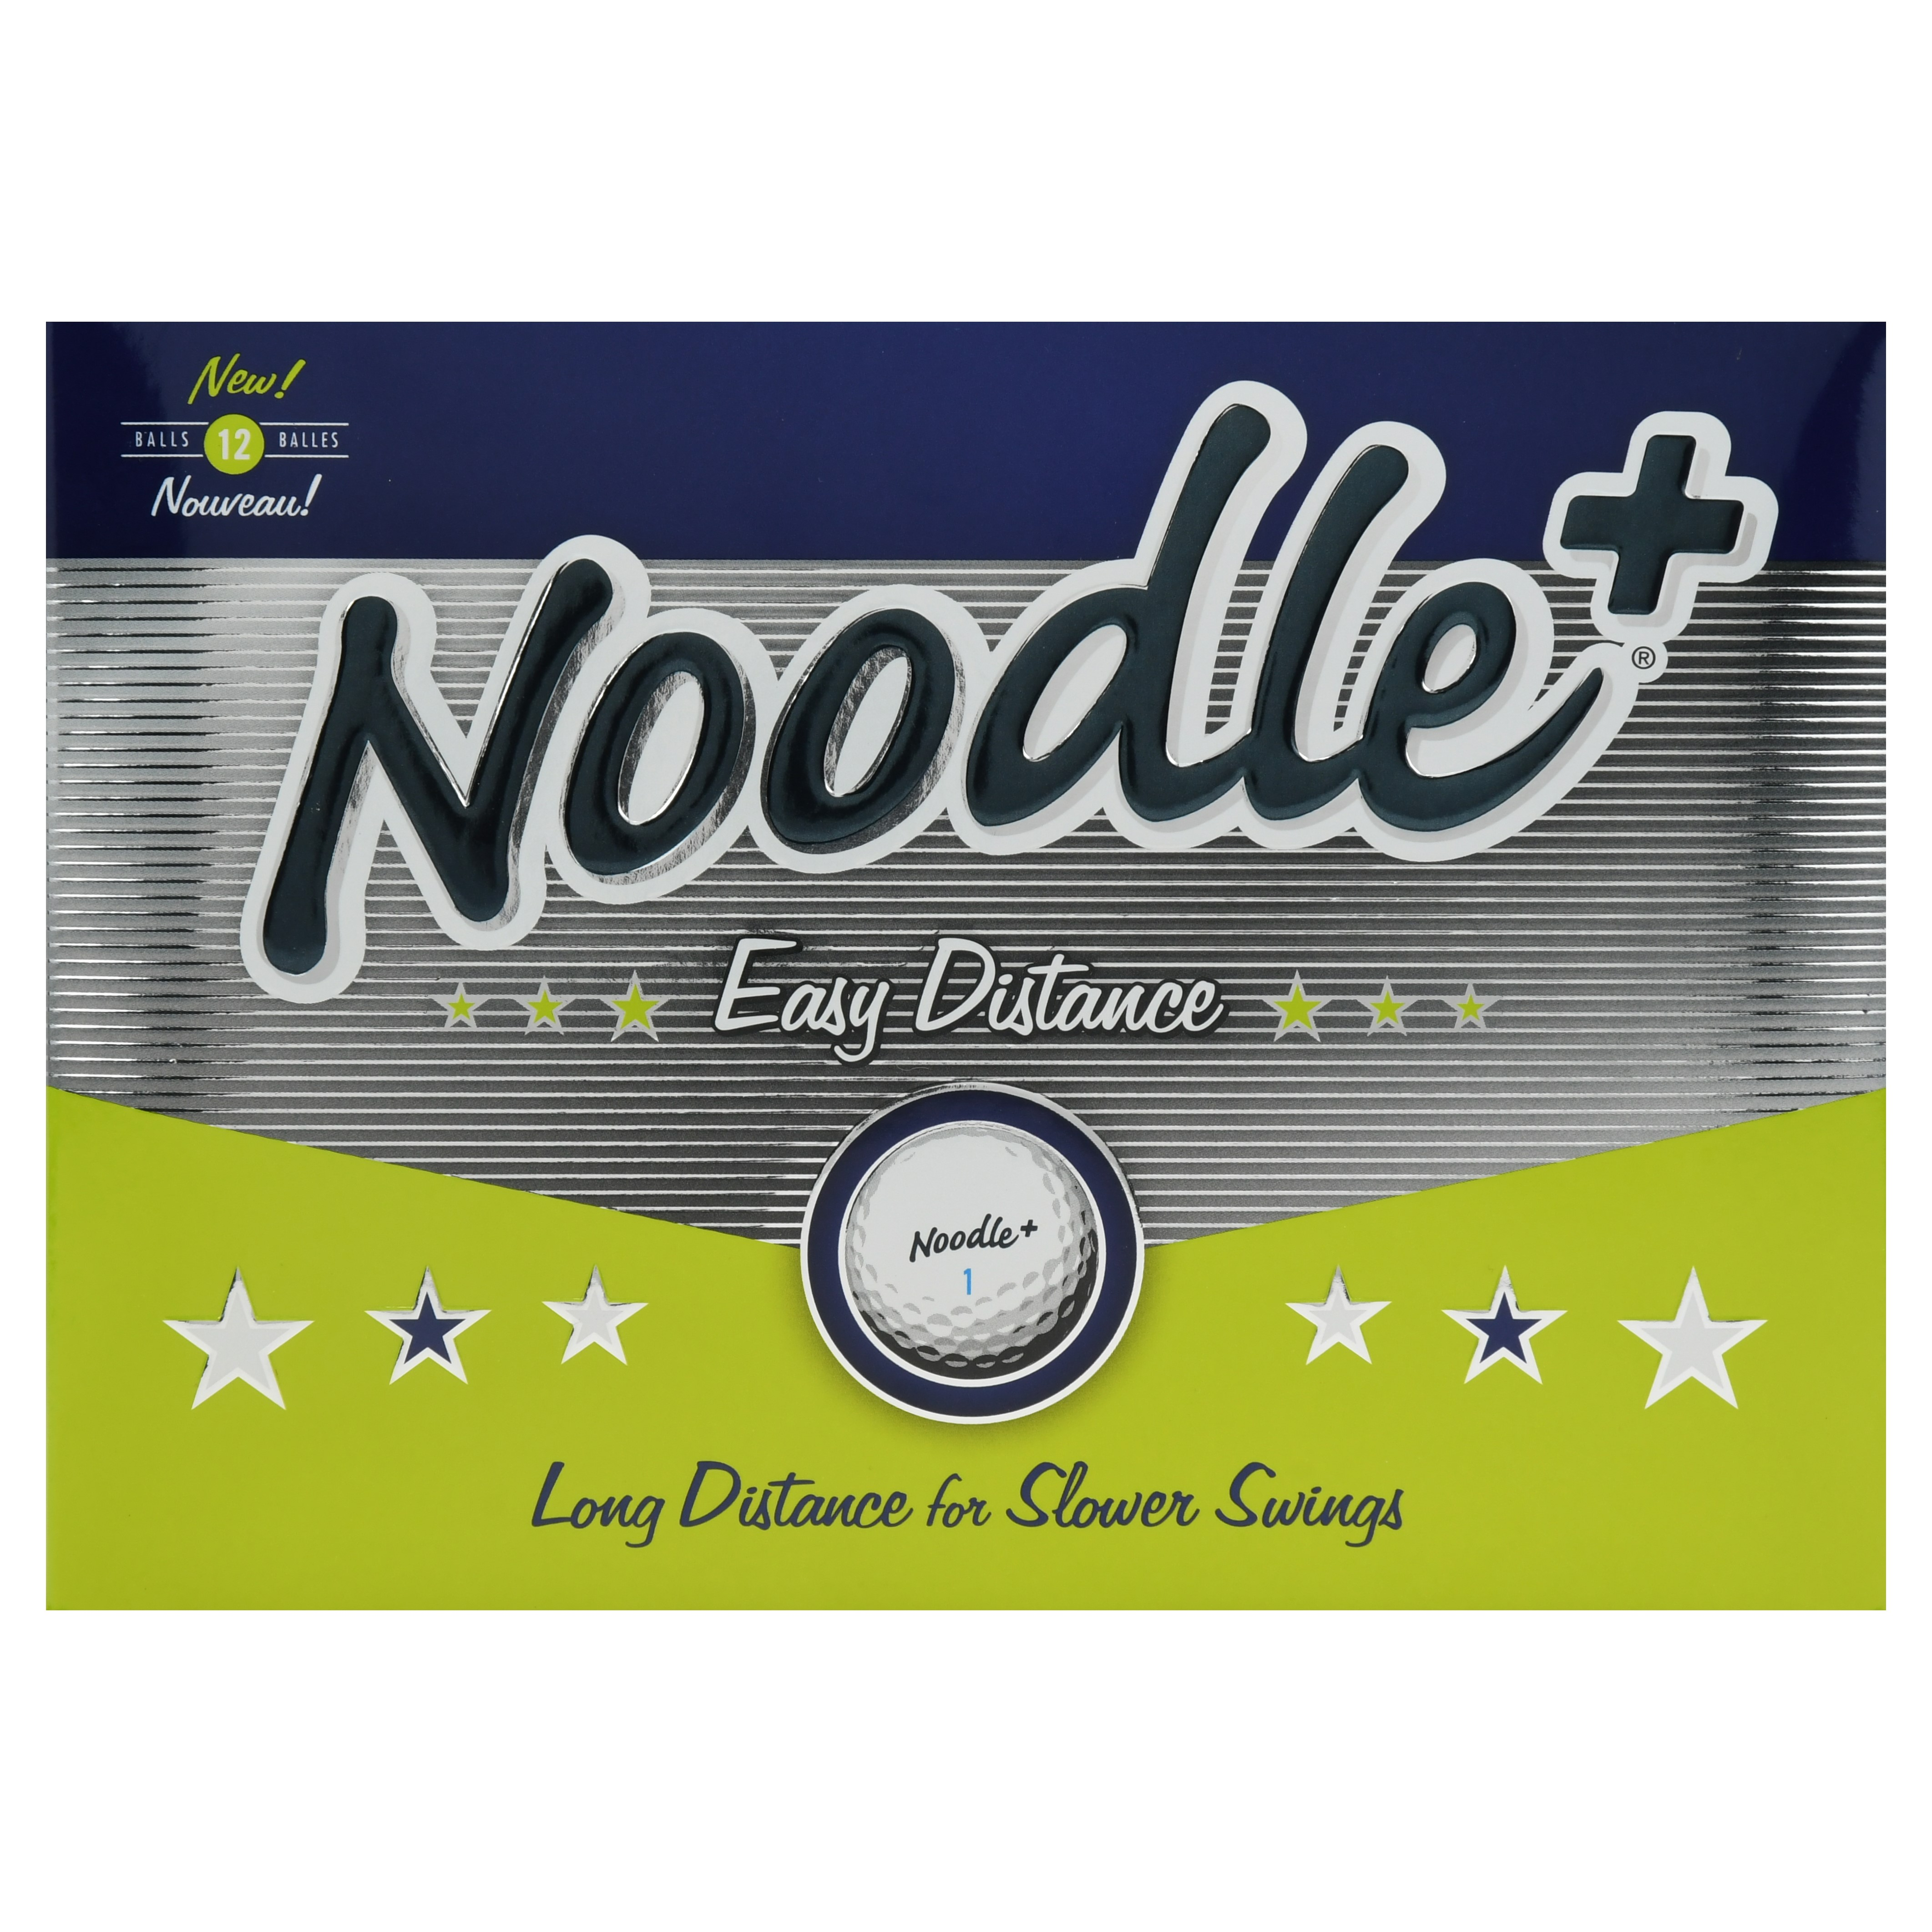 Noodle Plus Easy Distance Golf Balls, 12 Pack by TaylorMade Golf Company